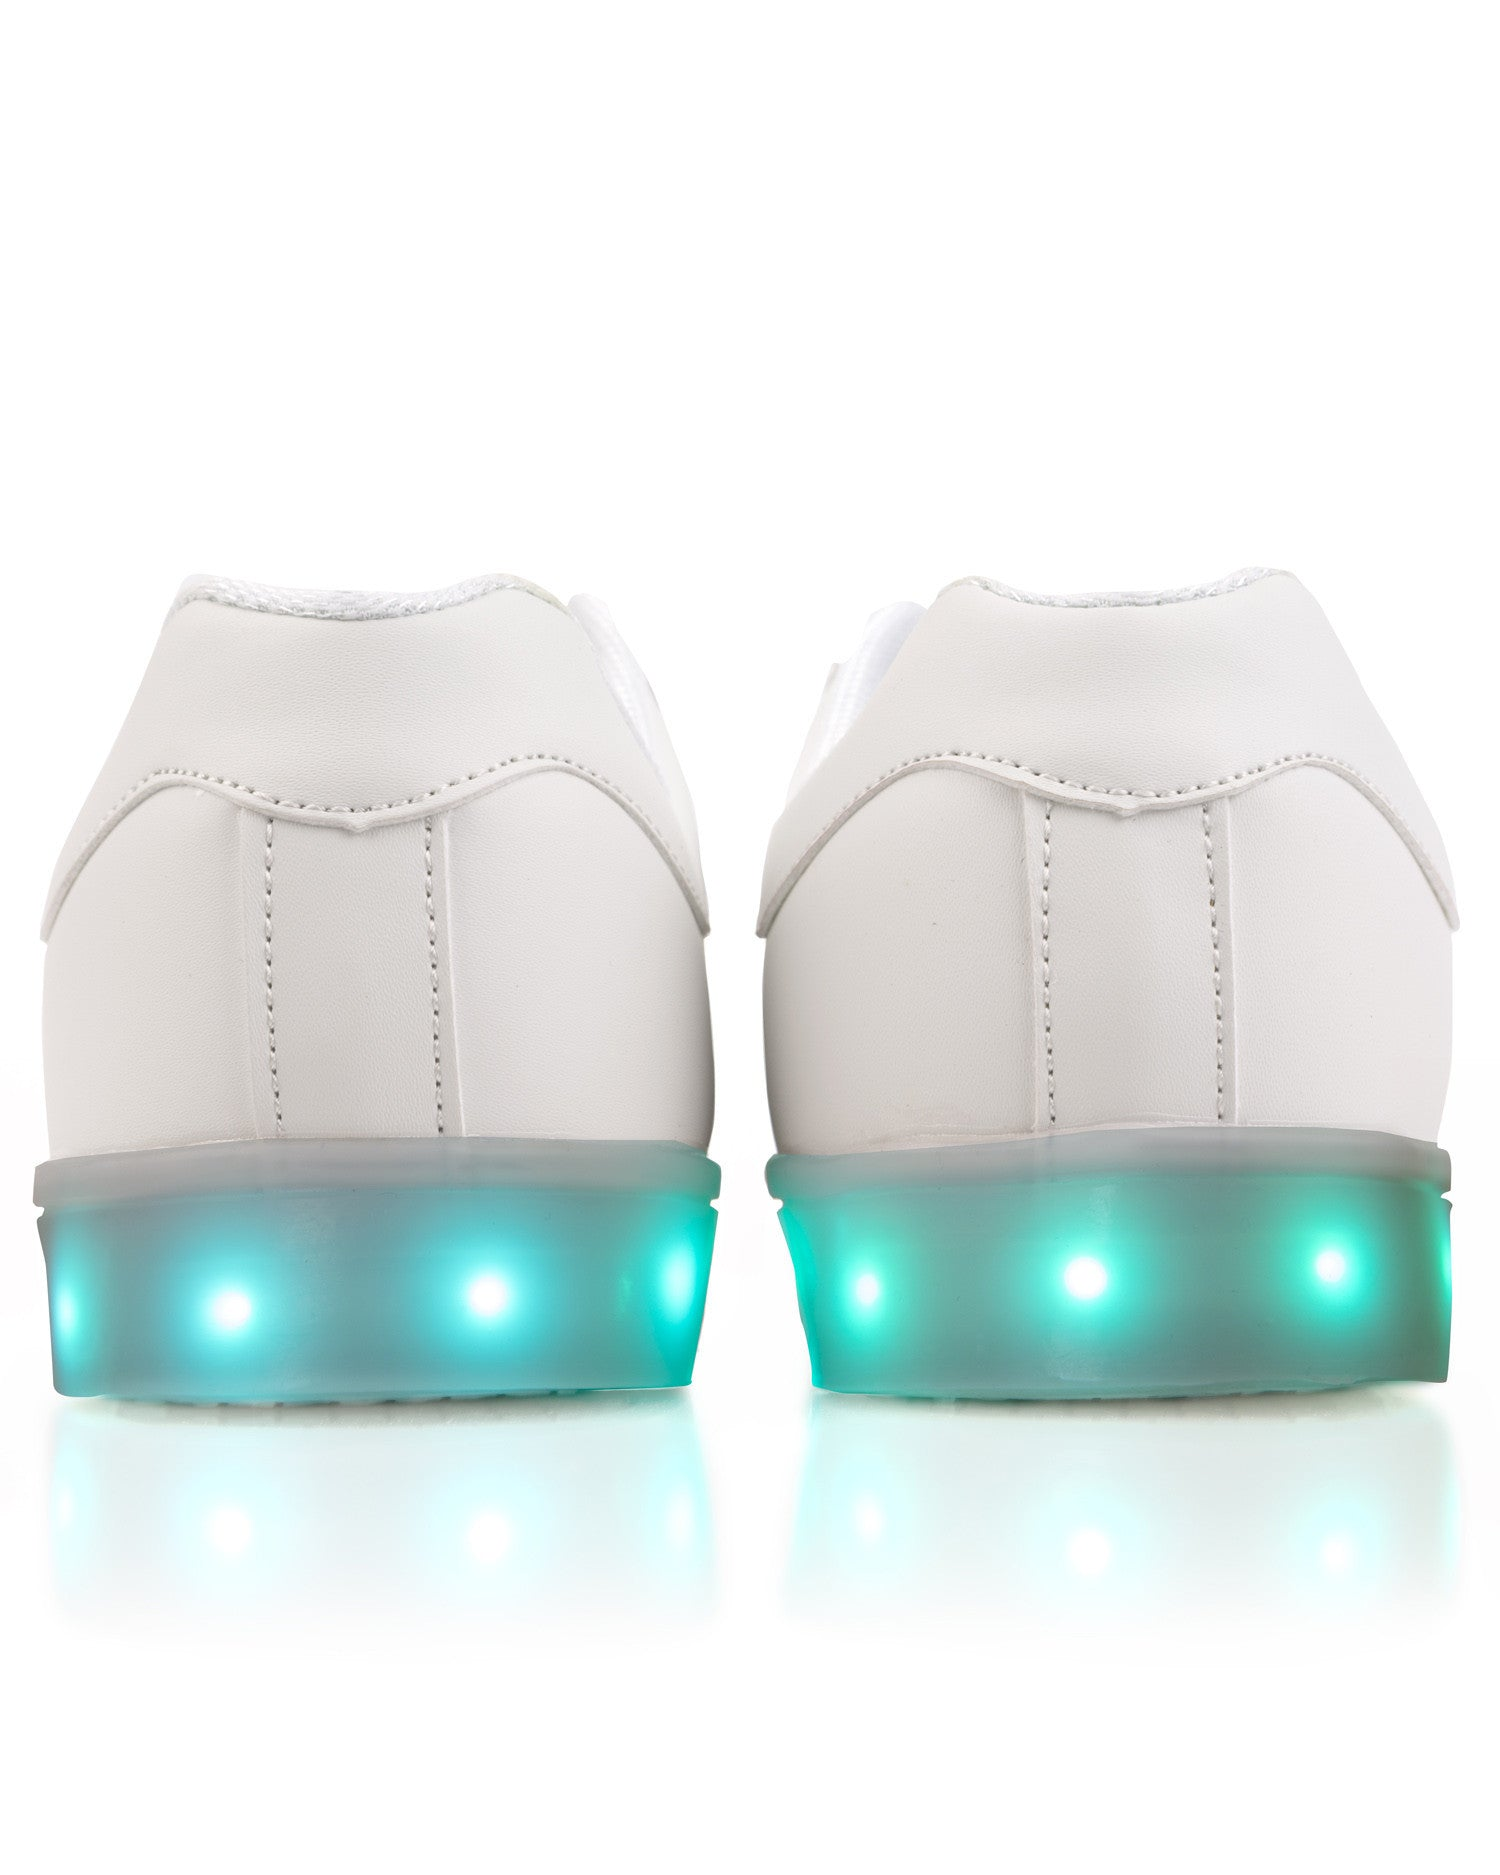 Electric Shoes - The Original - Electric Styles | World's Number 1 Light Up Shoe Store - {product_type}} -  - 3